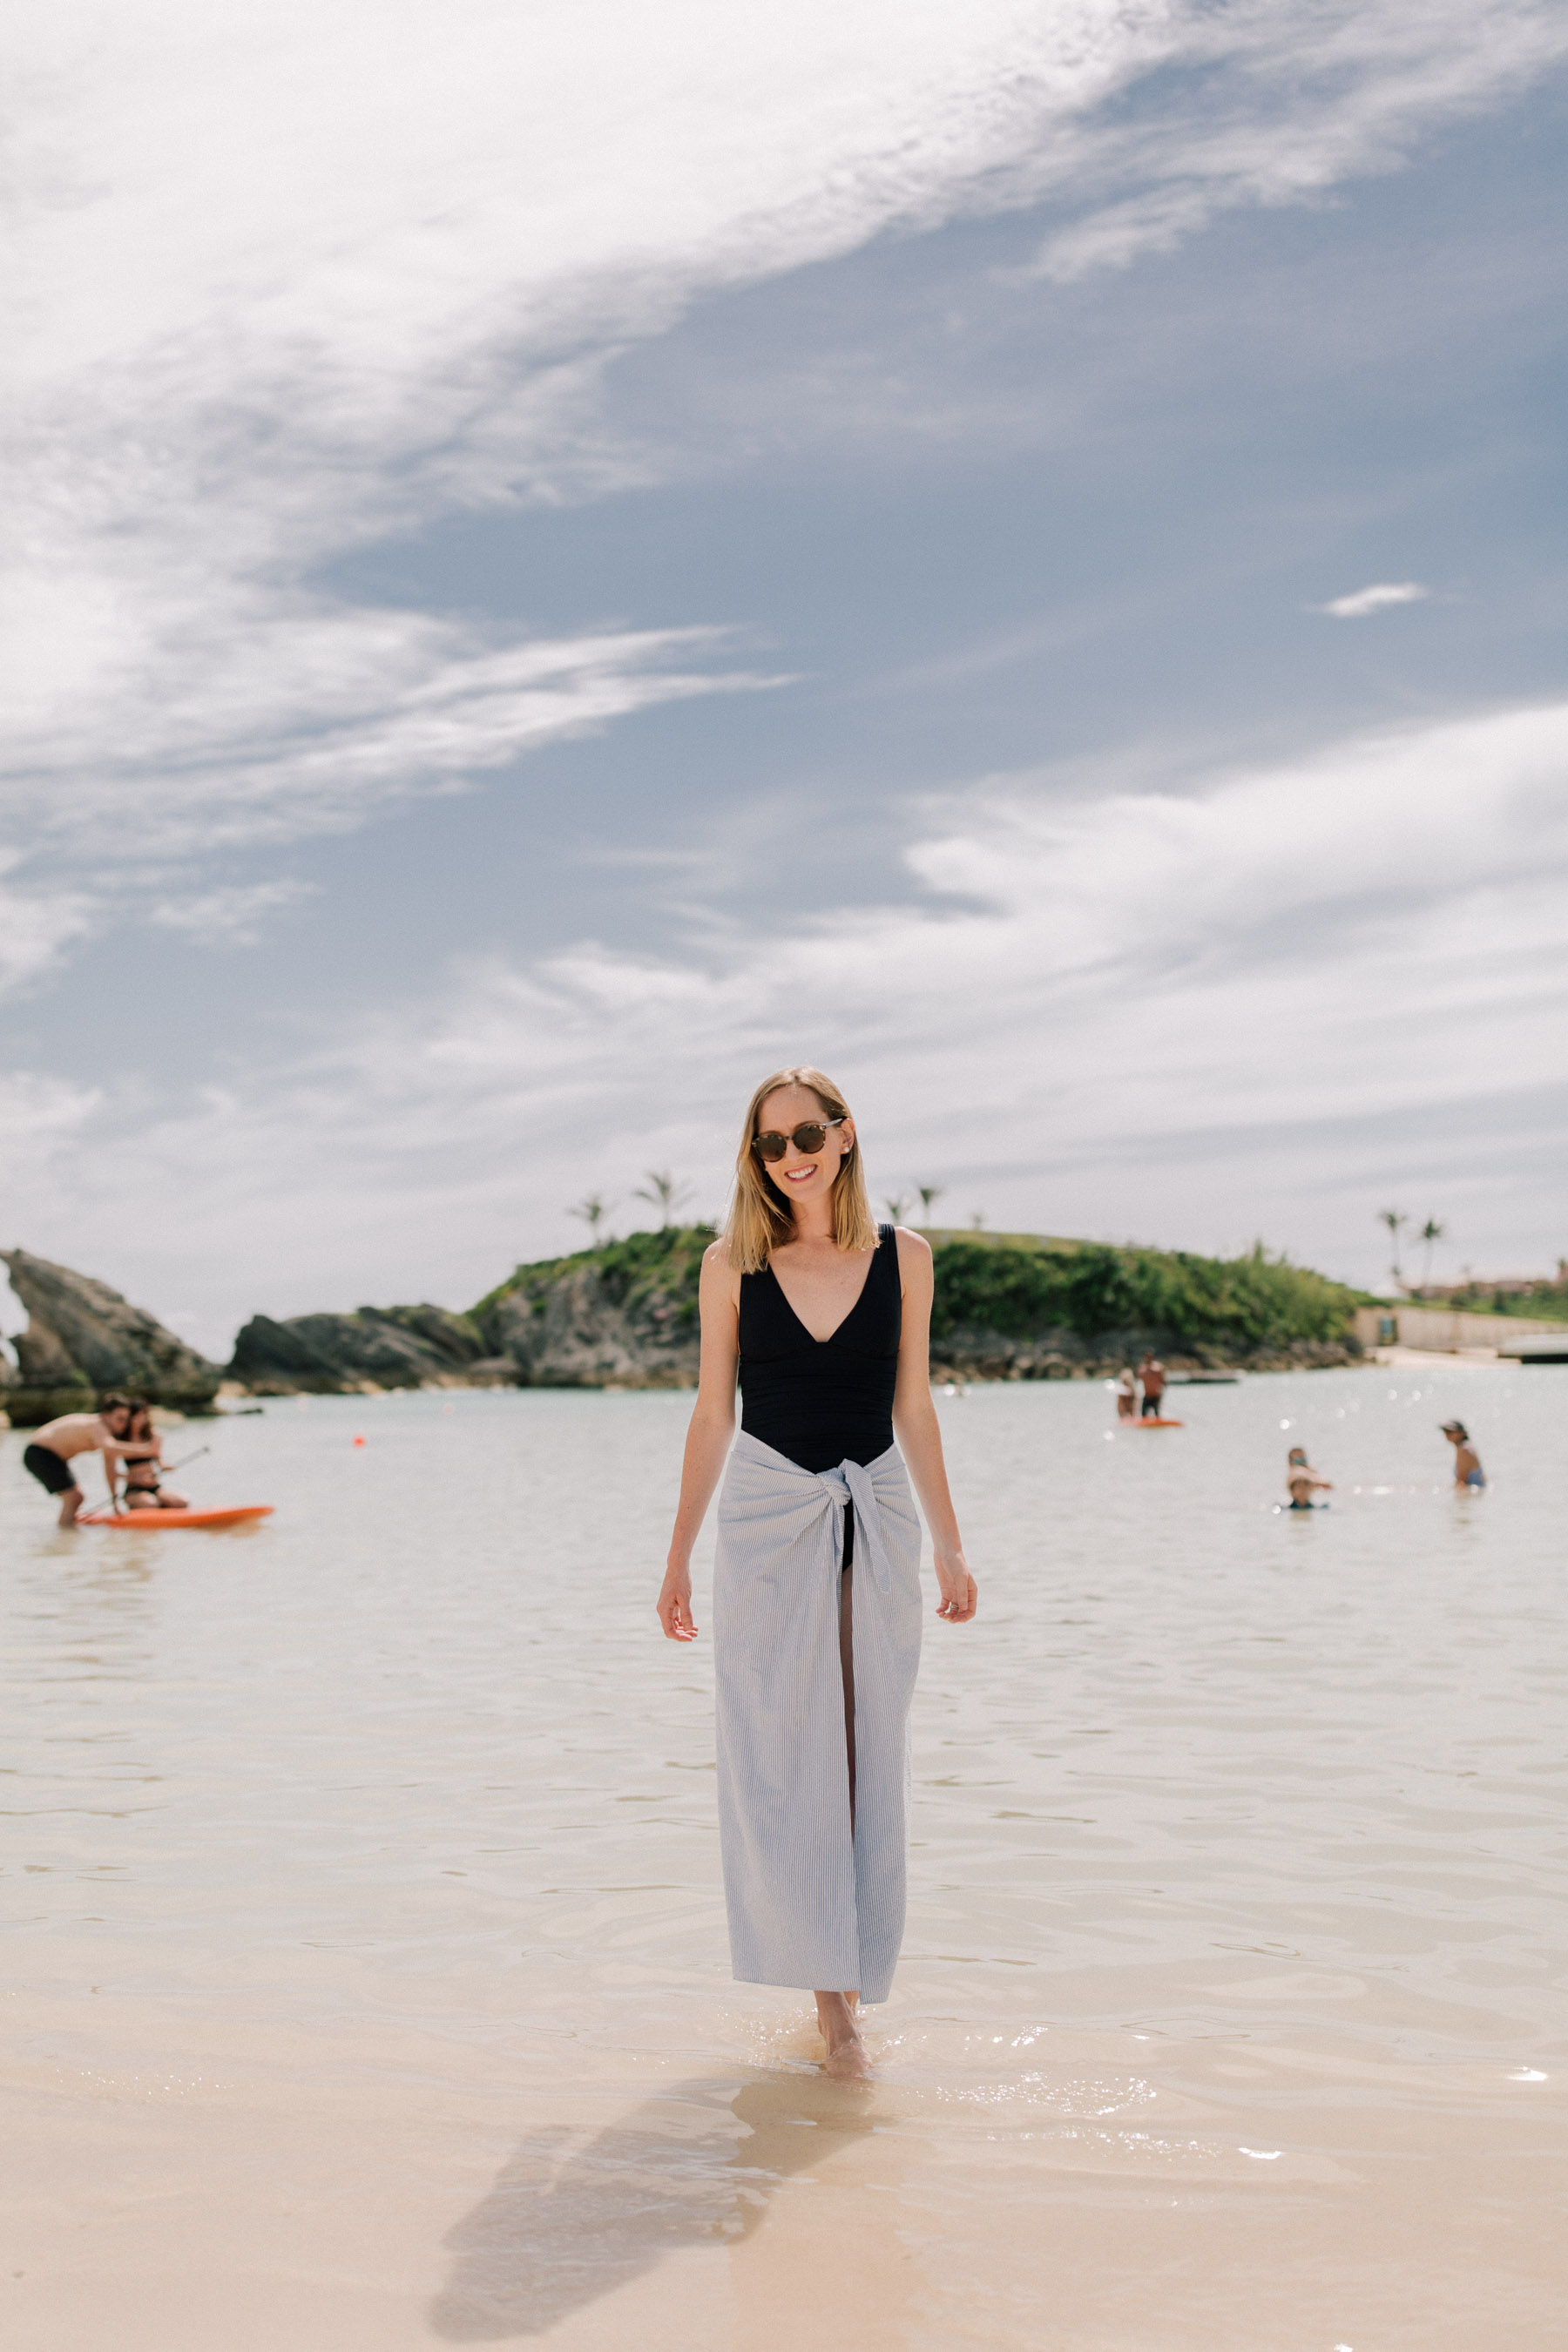 Kelly at a Private Bermudian Beach | Kelly in the City